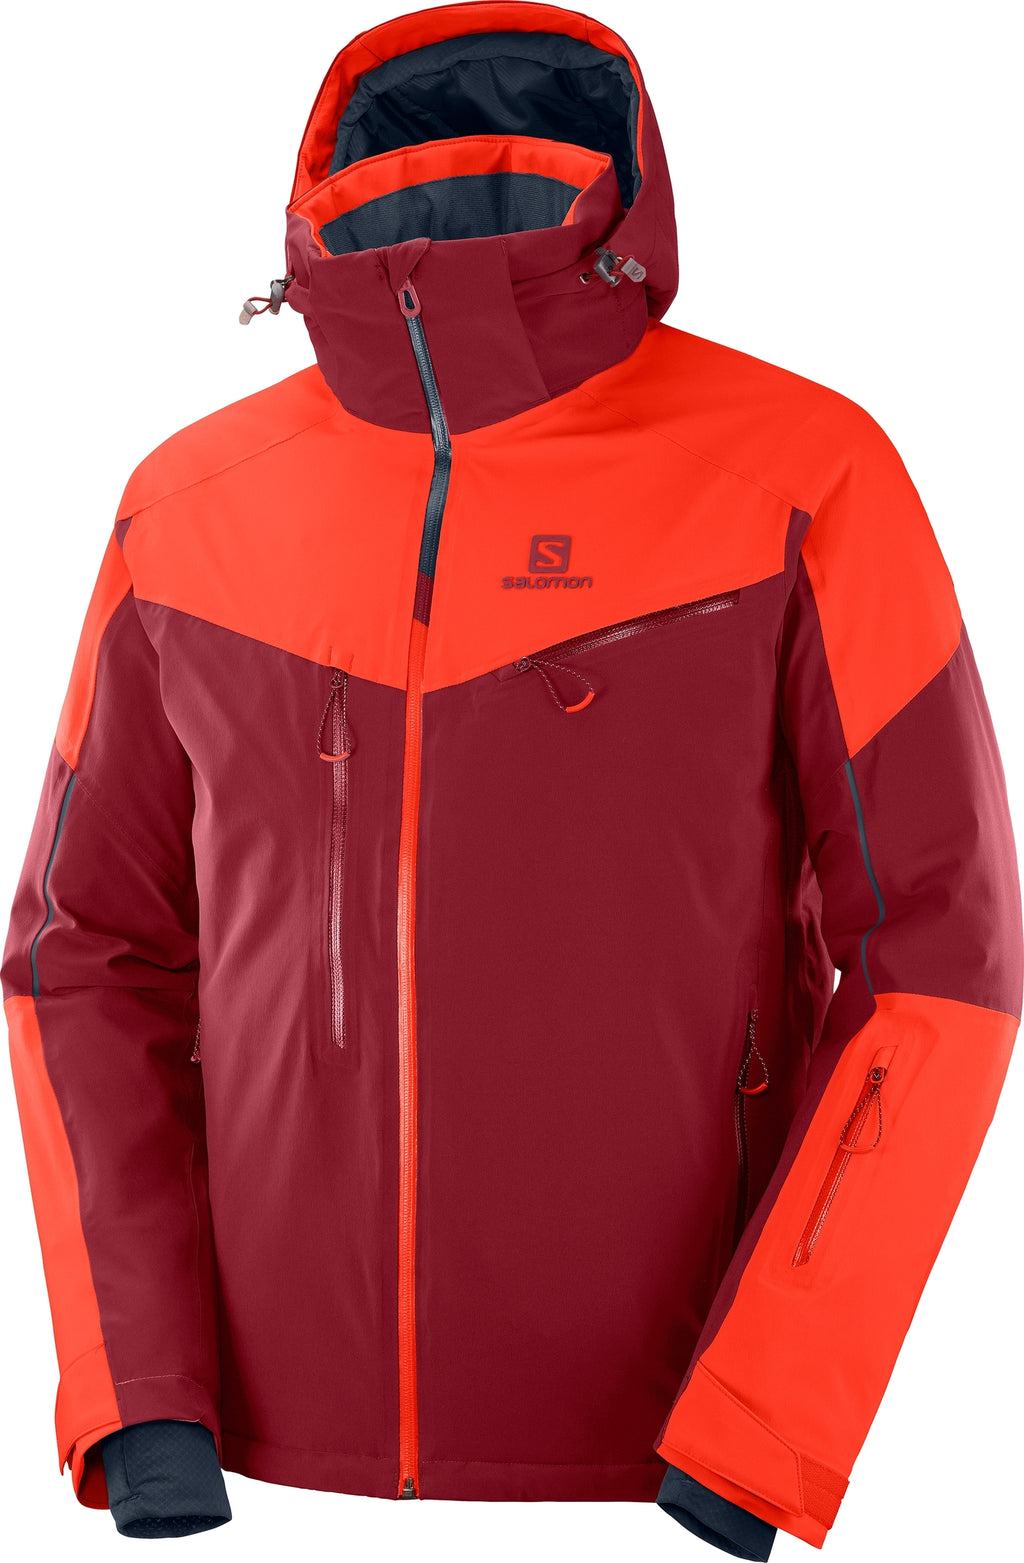 Salomon Icespeed Jacket Men's